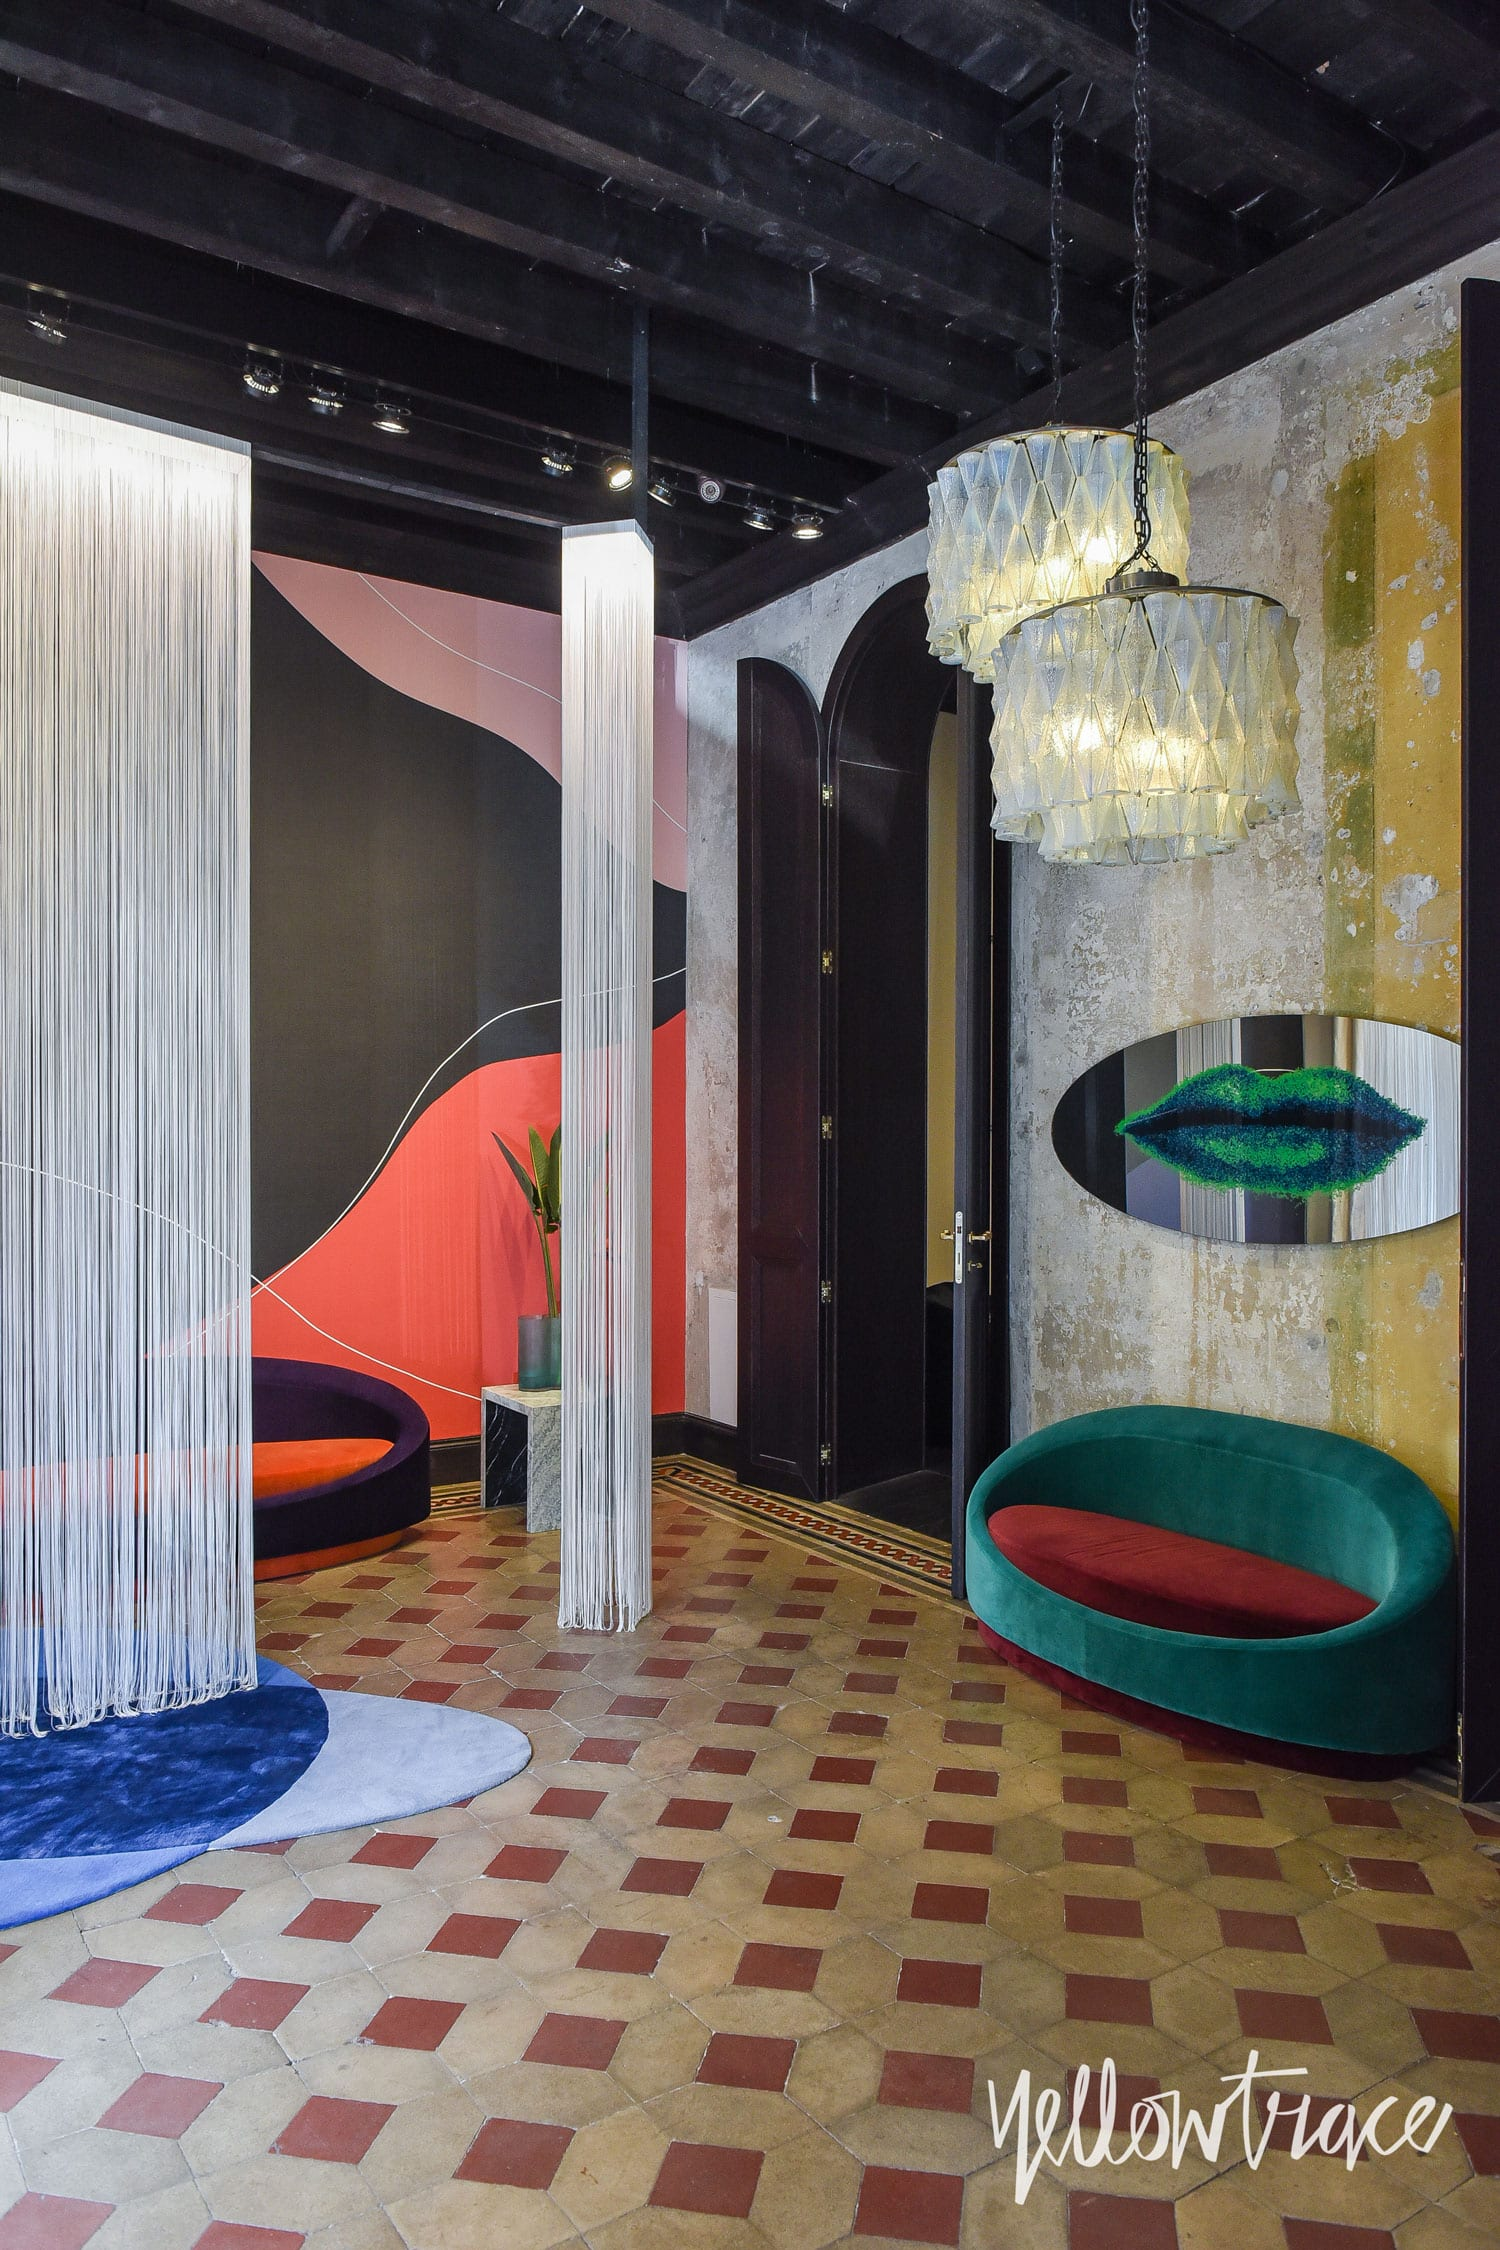 Milan Design Week 2018 Highlights, Texturae set up a 70s-style club art-directed by Chiara Andreatti with Paradisoterrestre. Photo © Nick Hughes | #Milantrace2018